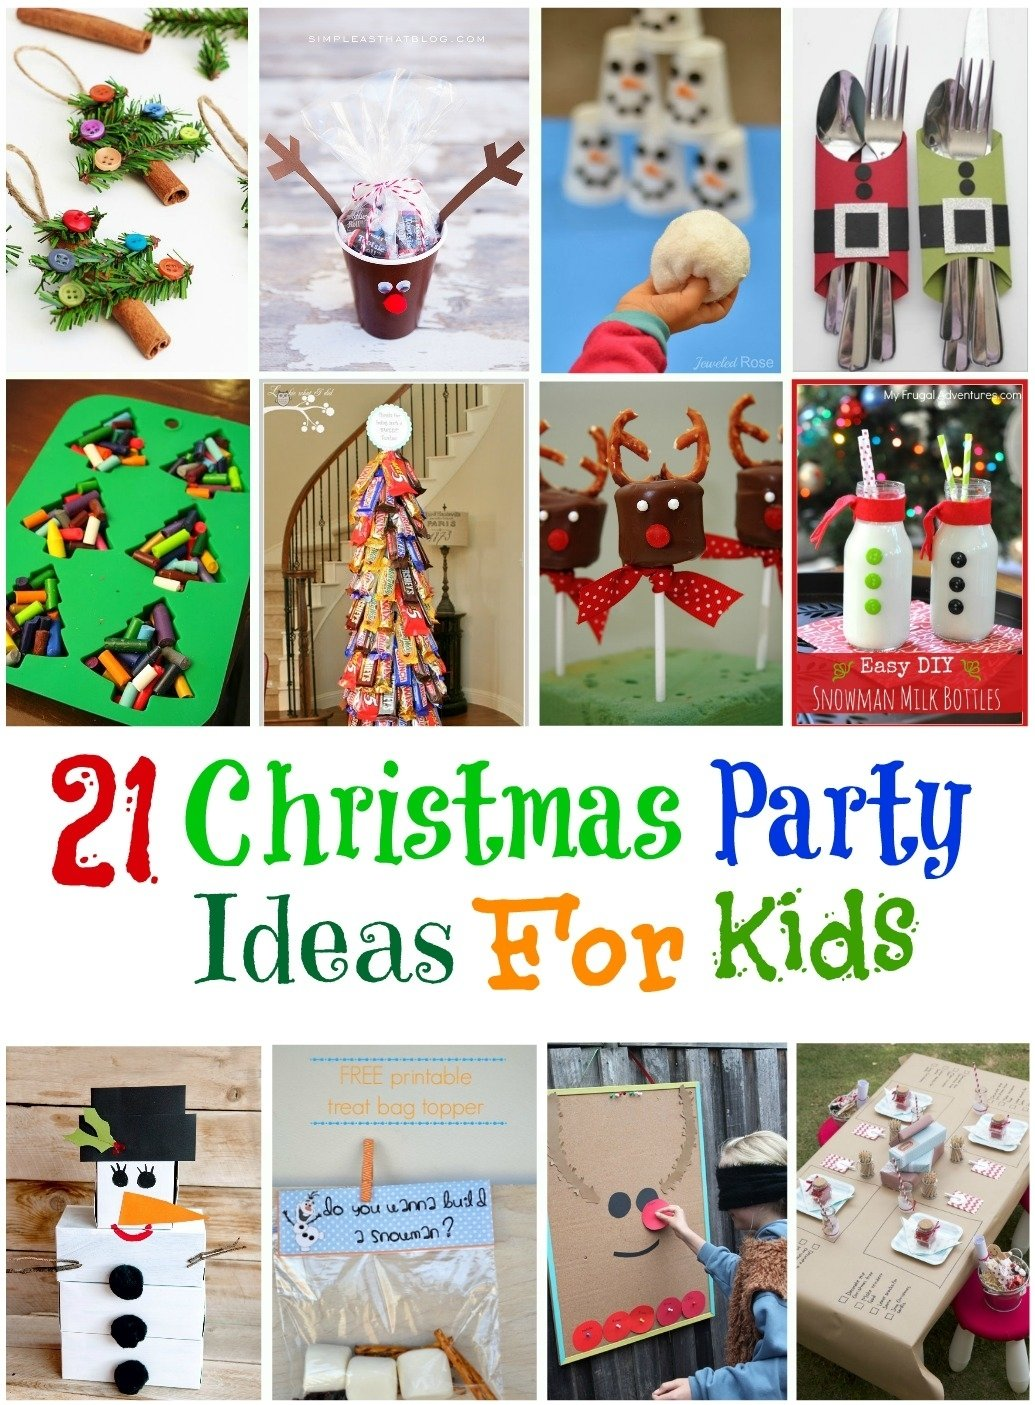 10 Attractive Christmas Pictures Ideas For Kids 21 amazing christmas party ideas for kids 2020